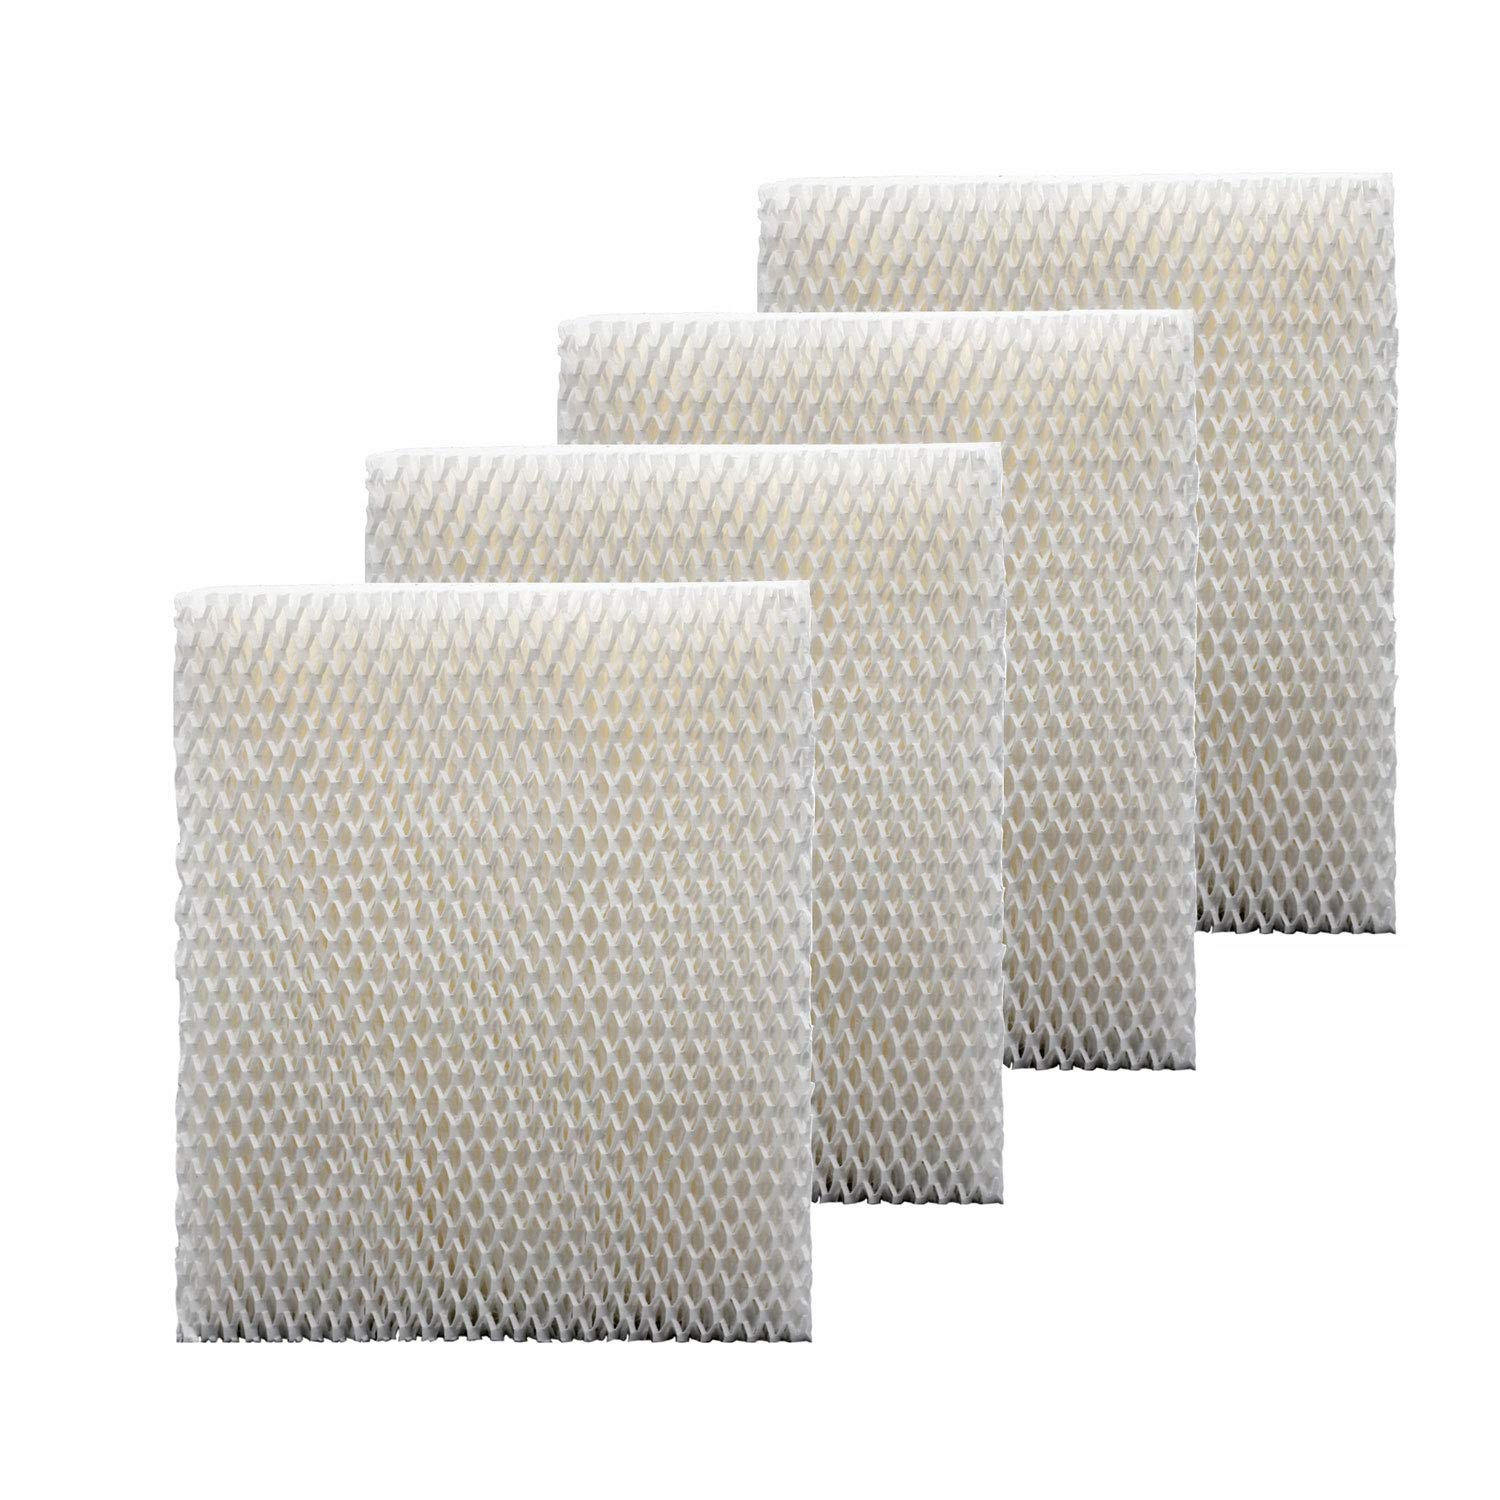 Colorffullife 4 Pack Humidifier Filter T for Honeywell Top Fill Tower Humidifier HEV615, HEV620, Replacement HFT600 Filter T by Colorfullife